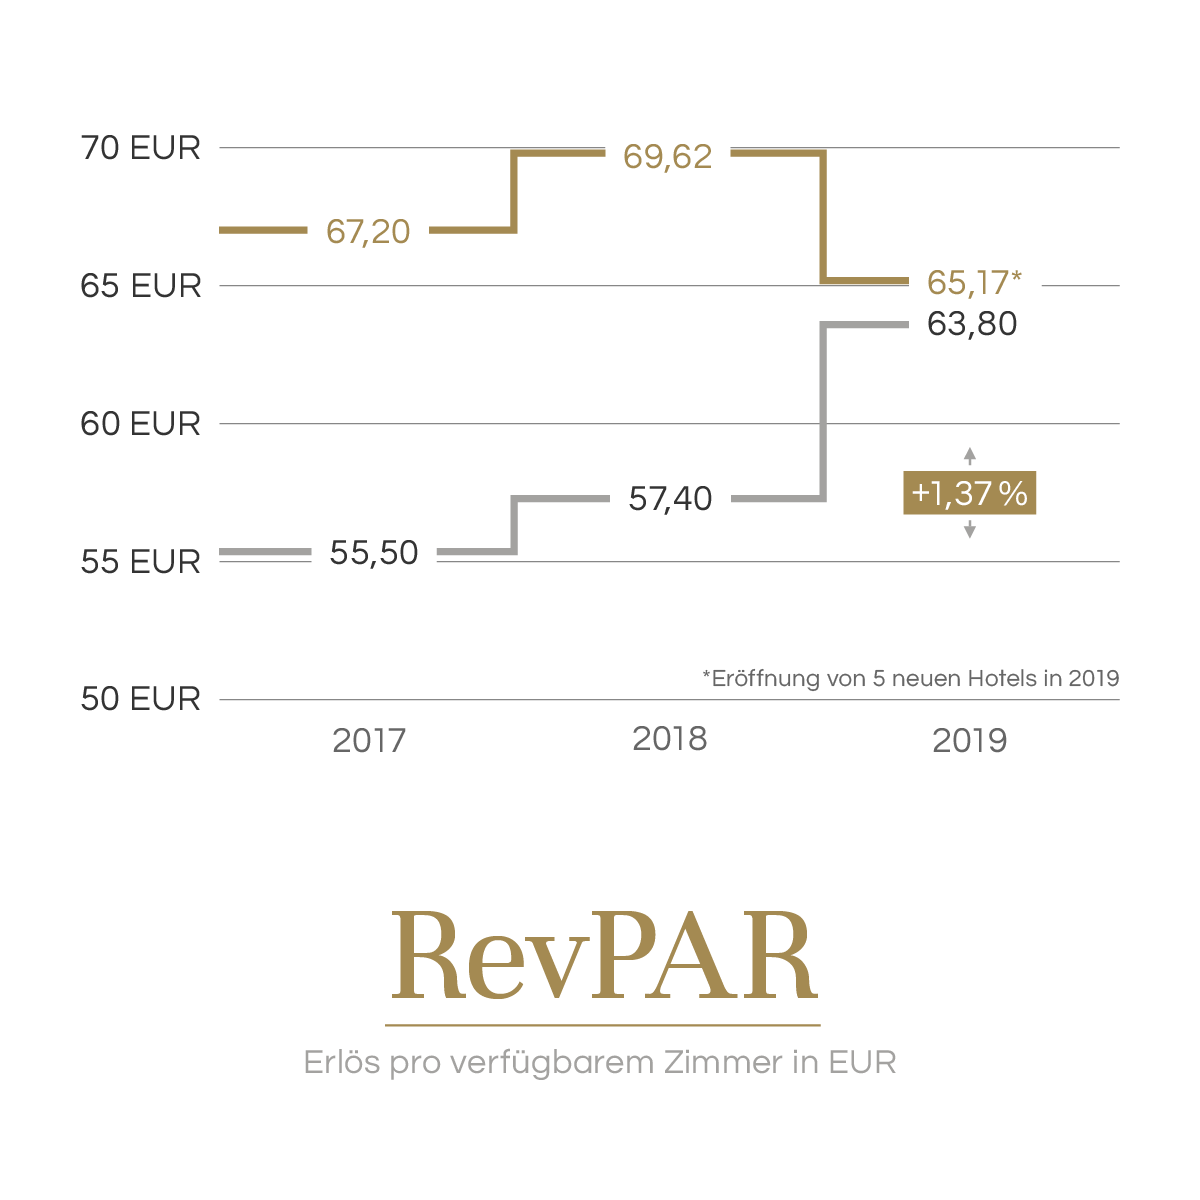 Revenue per available room in EUR